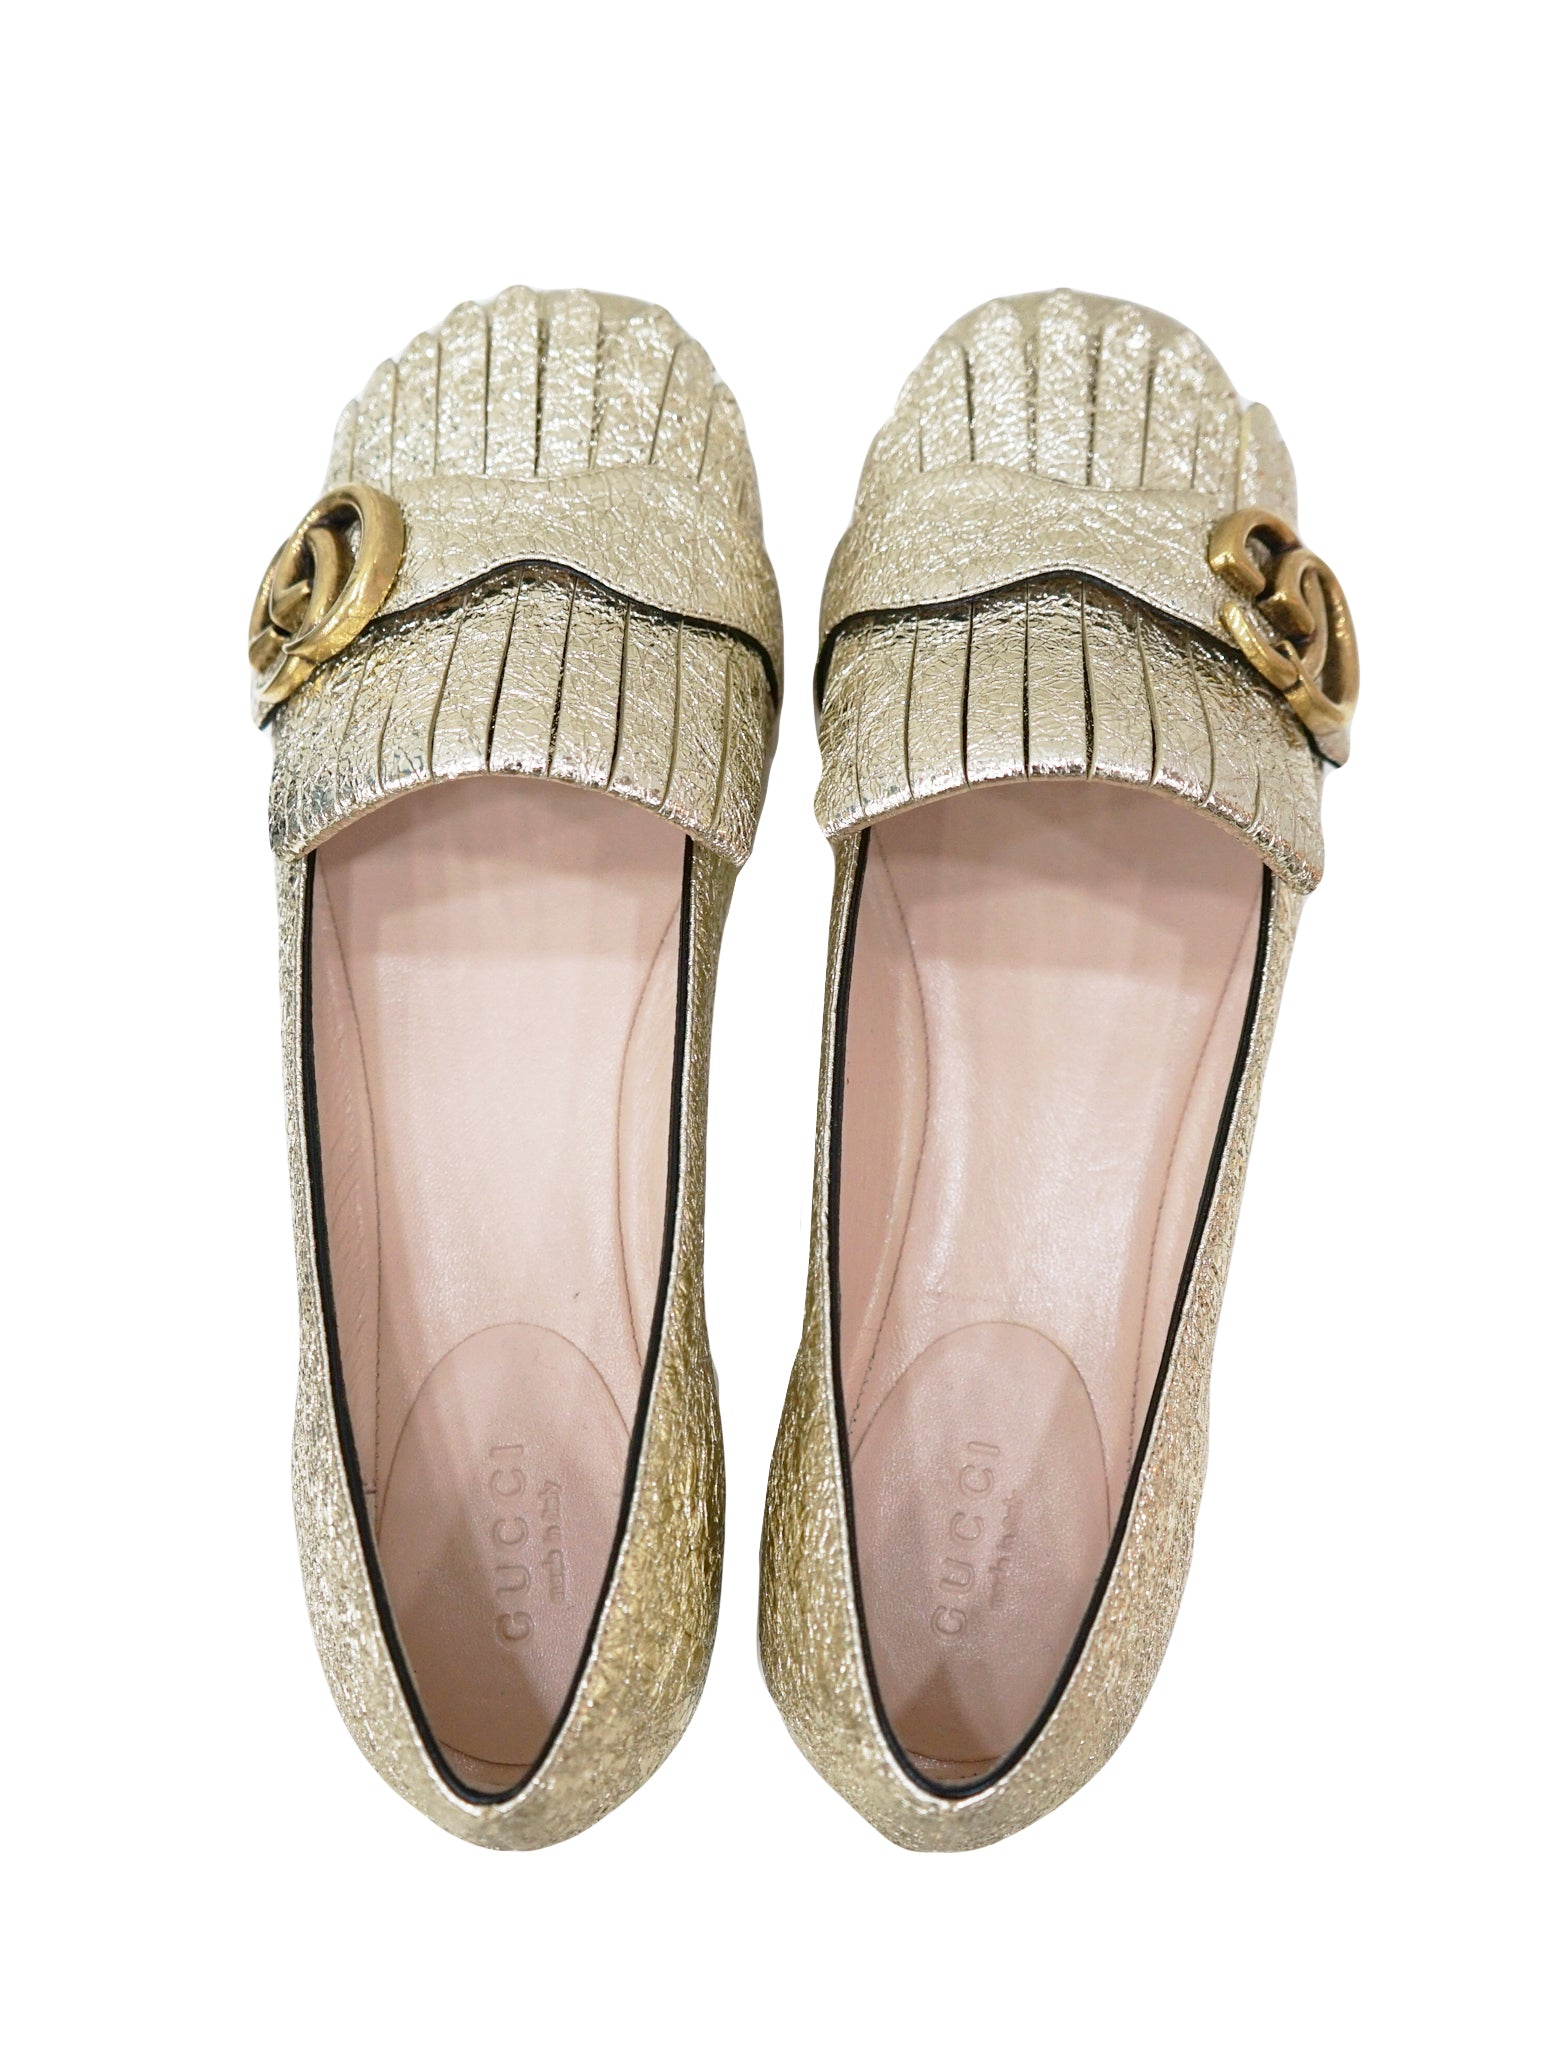 FOIL LEATHER GG MARMONT FRINGE FLATS